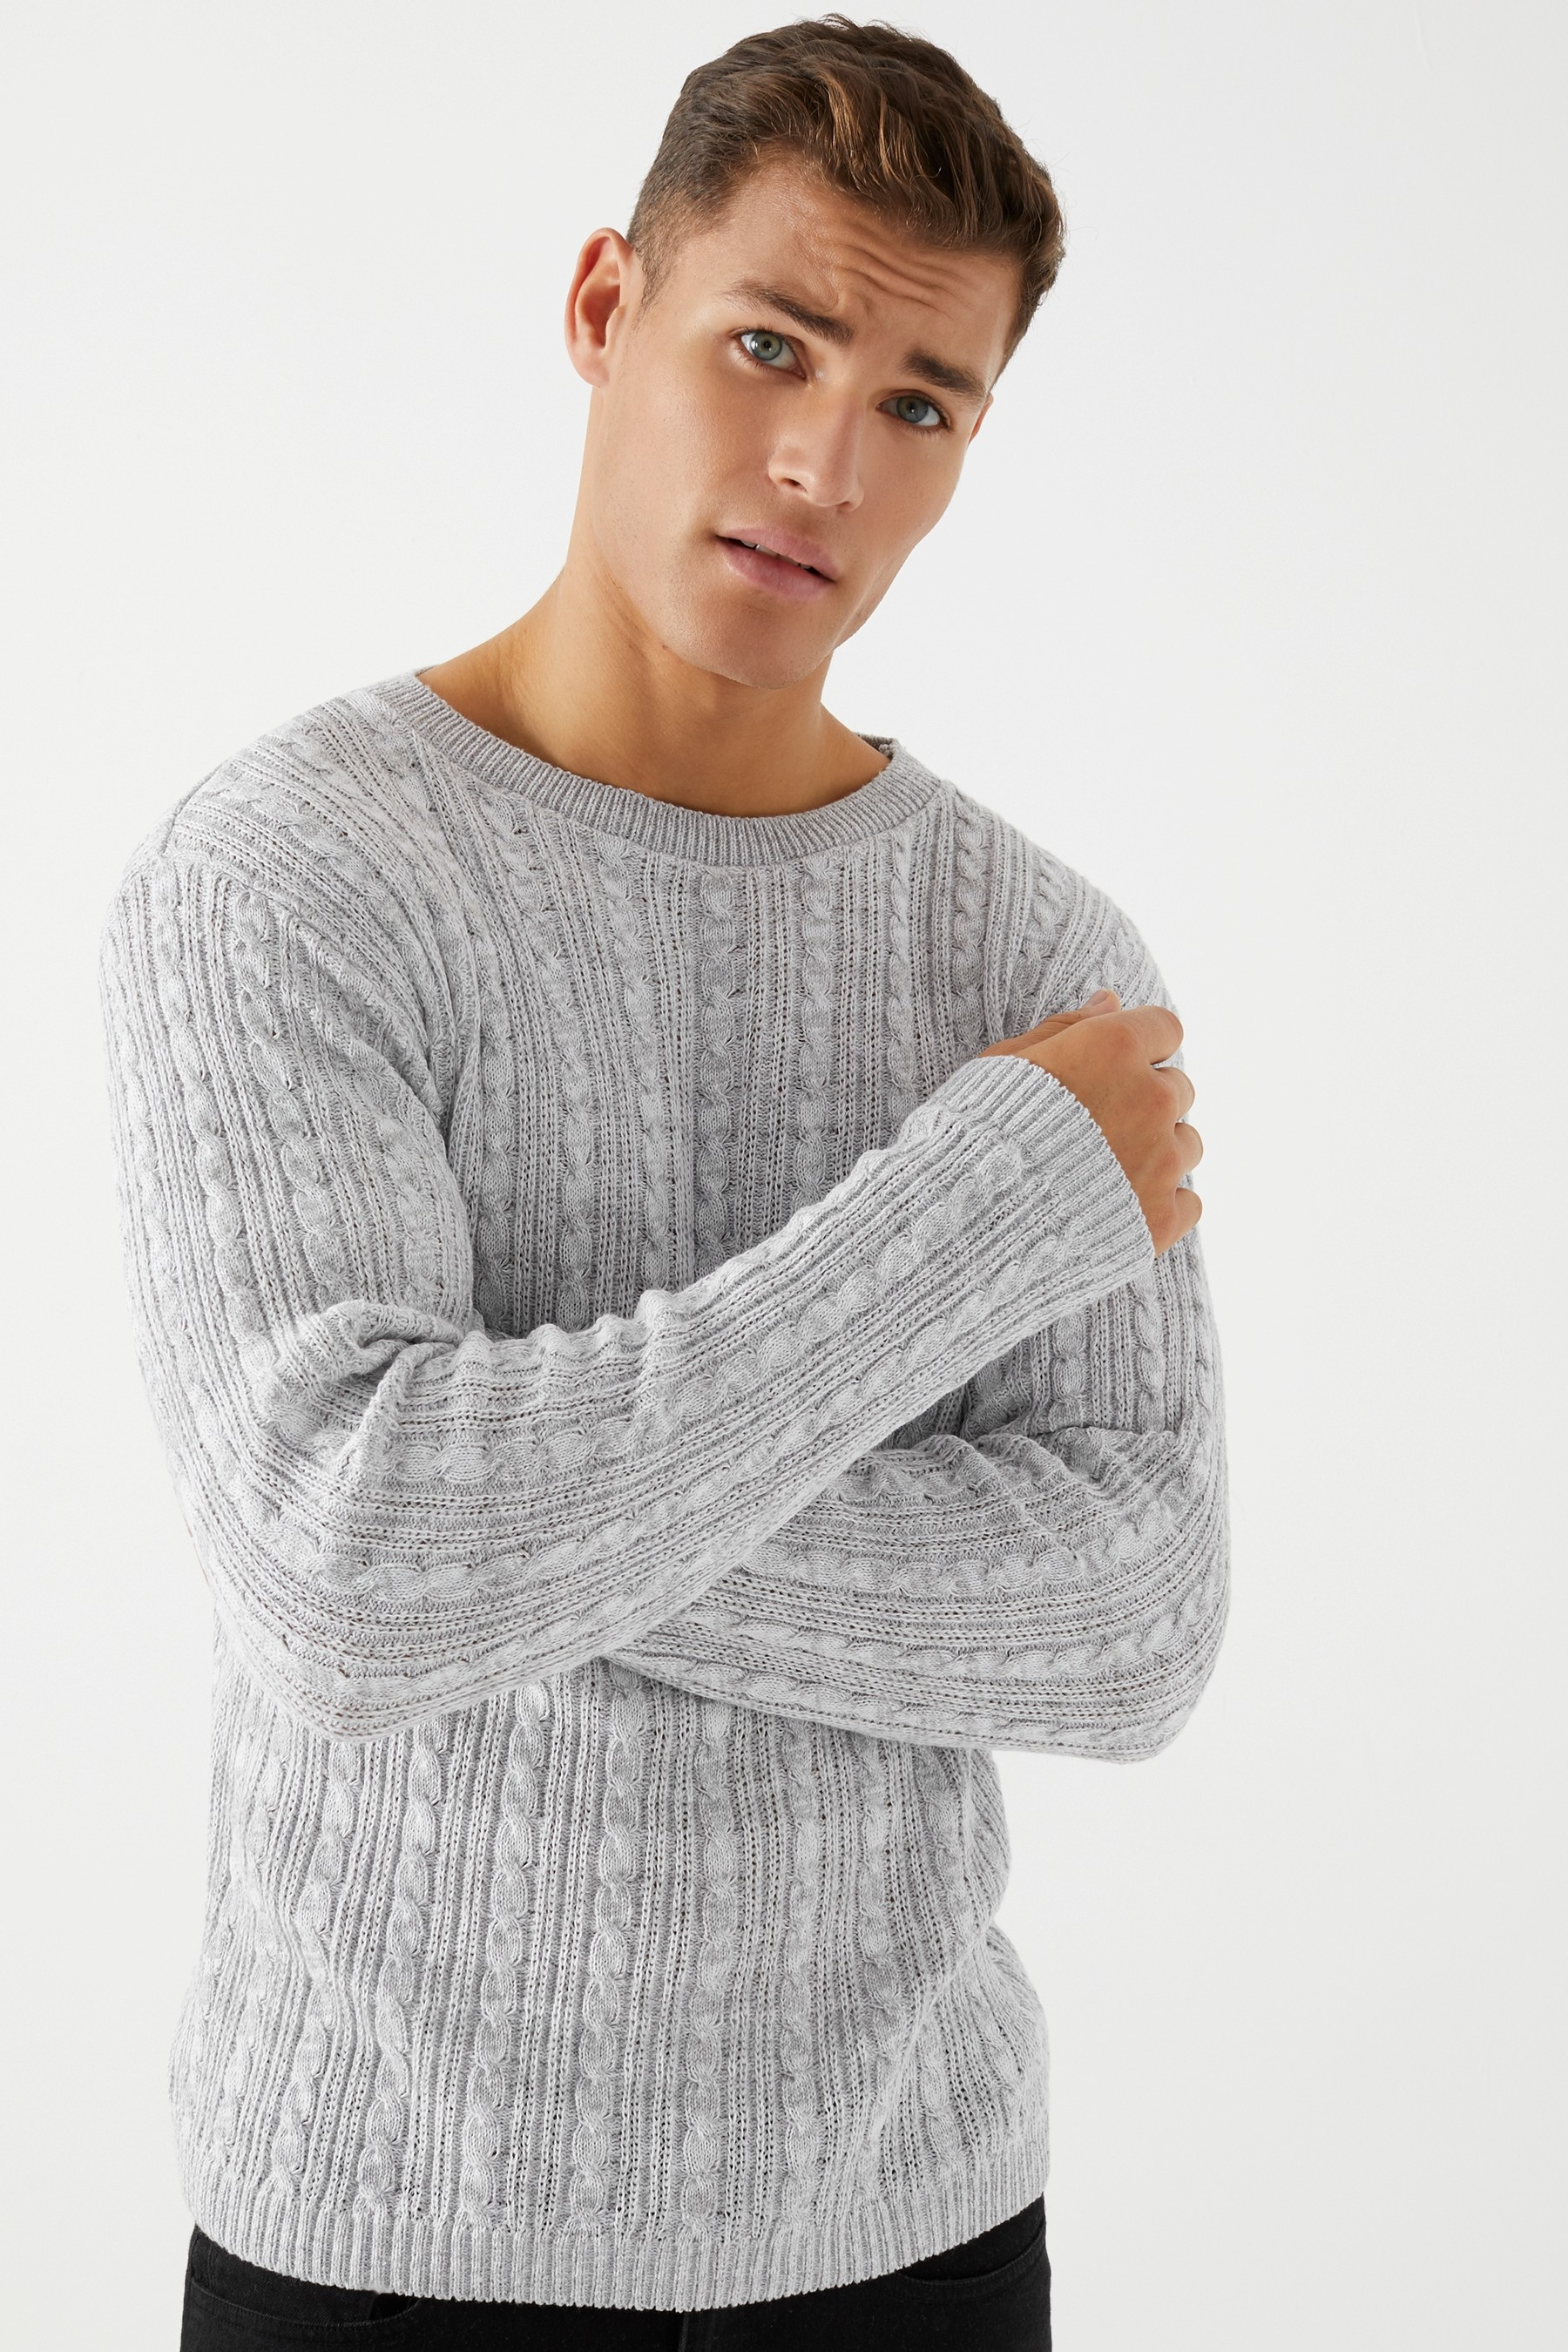 Mens Boohoo Man Jumper Grey | Jumper, Fashion, Boohoo